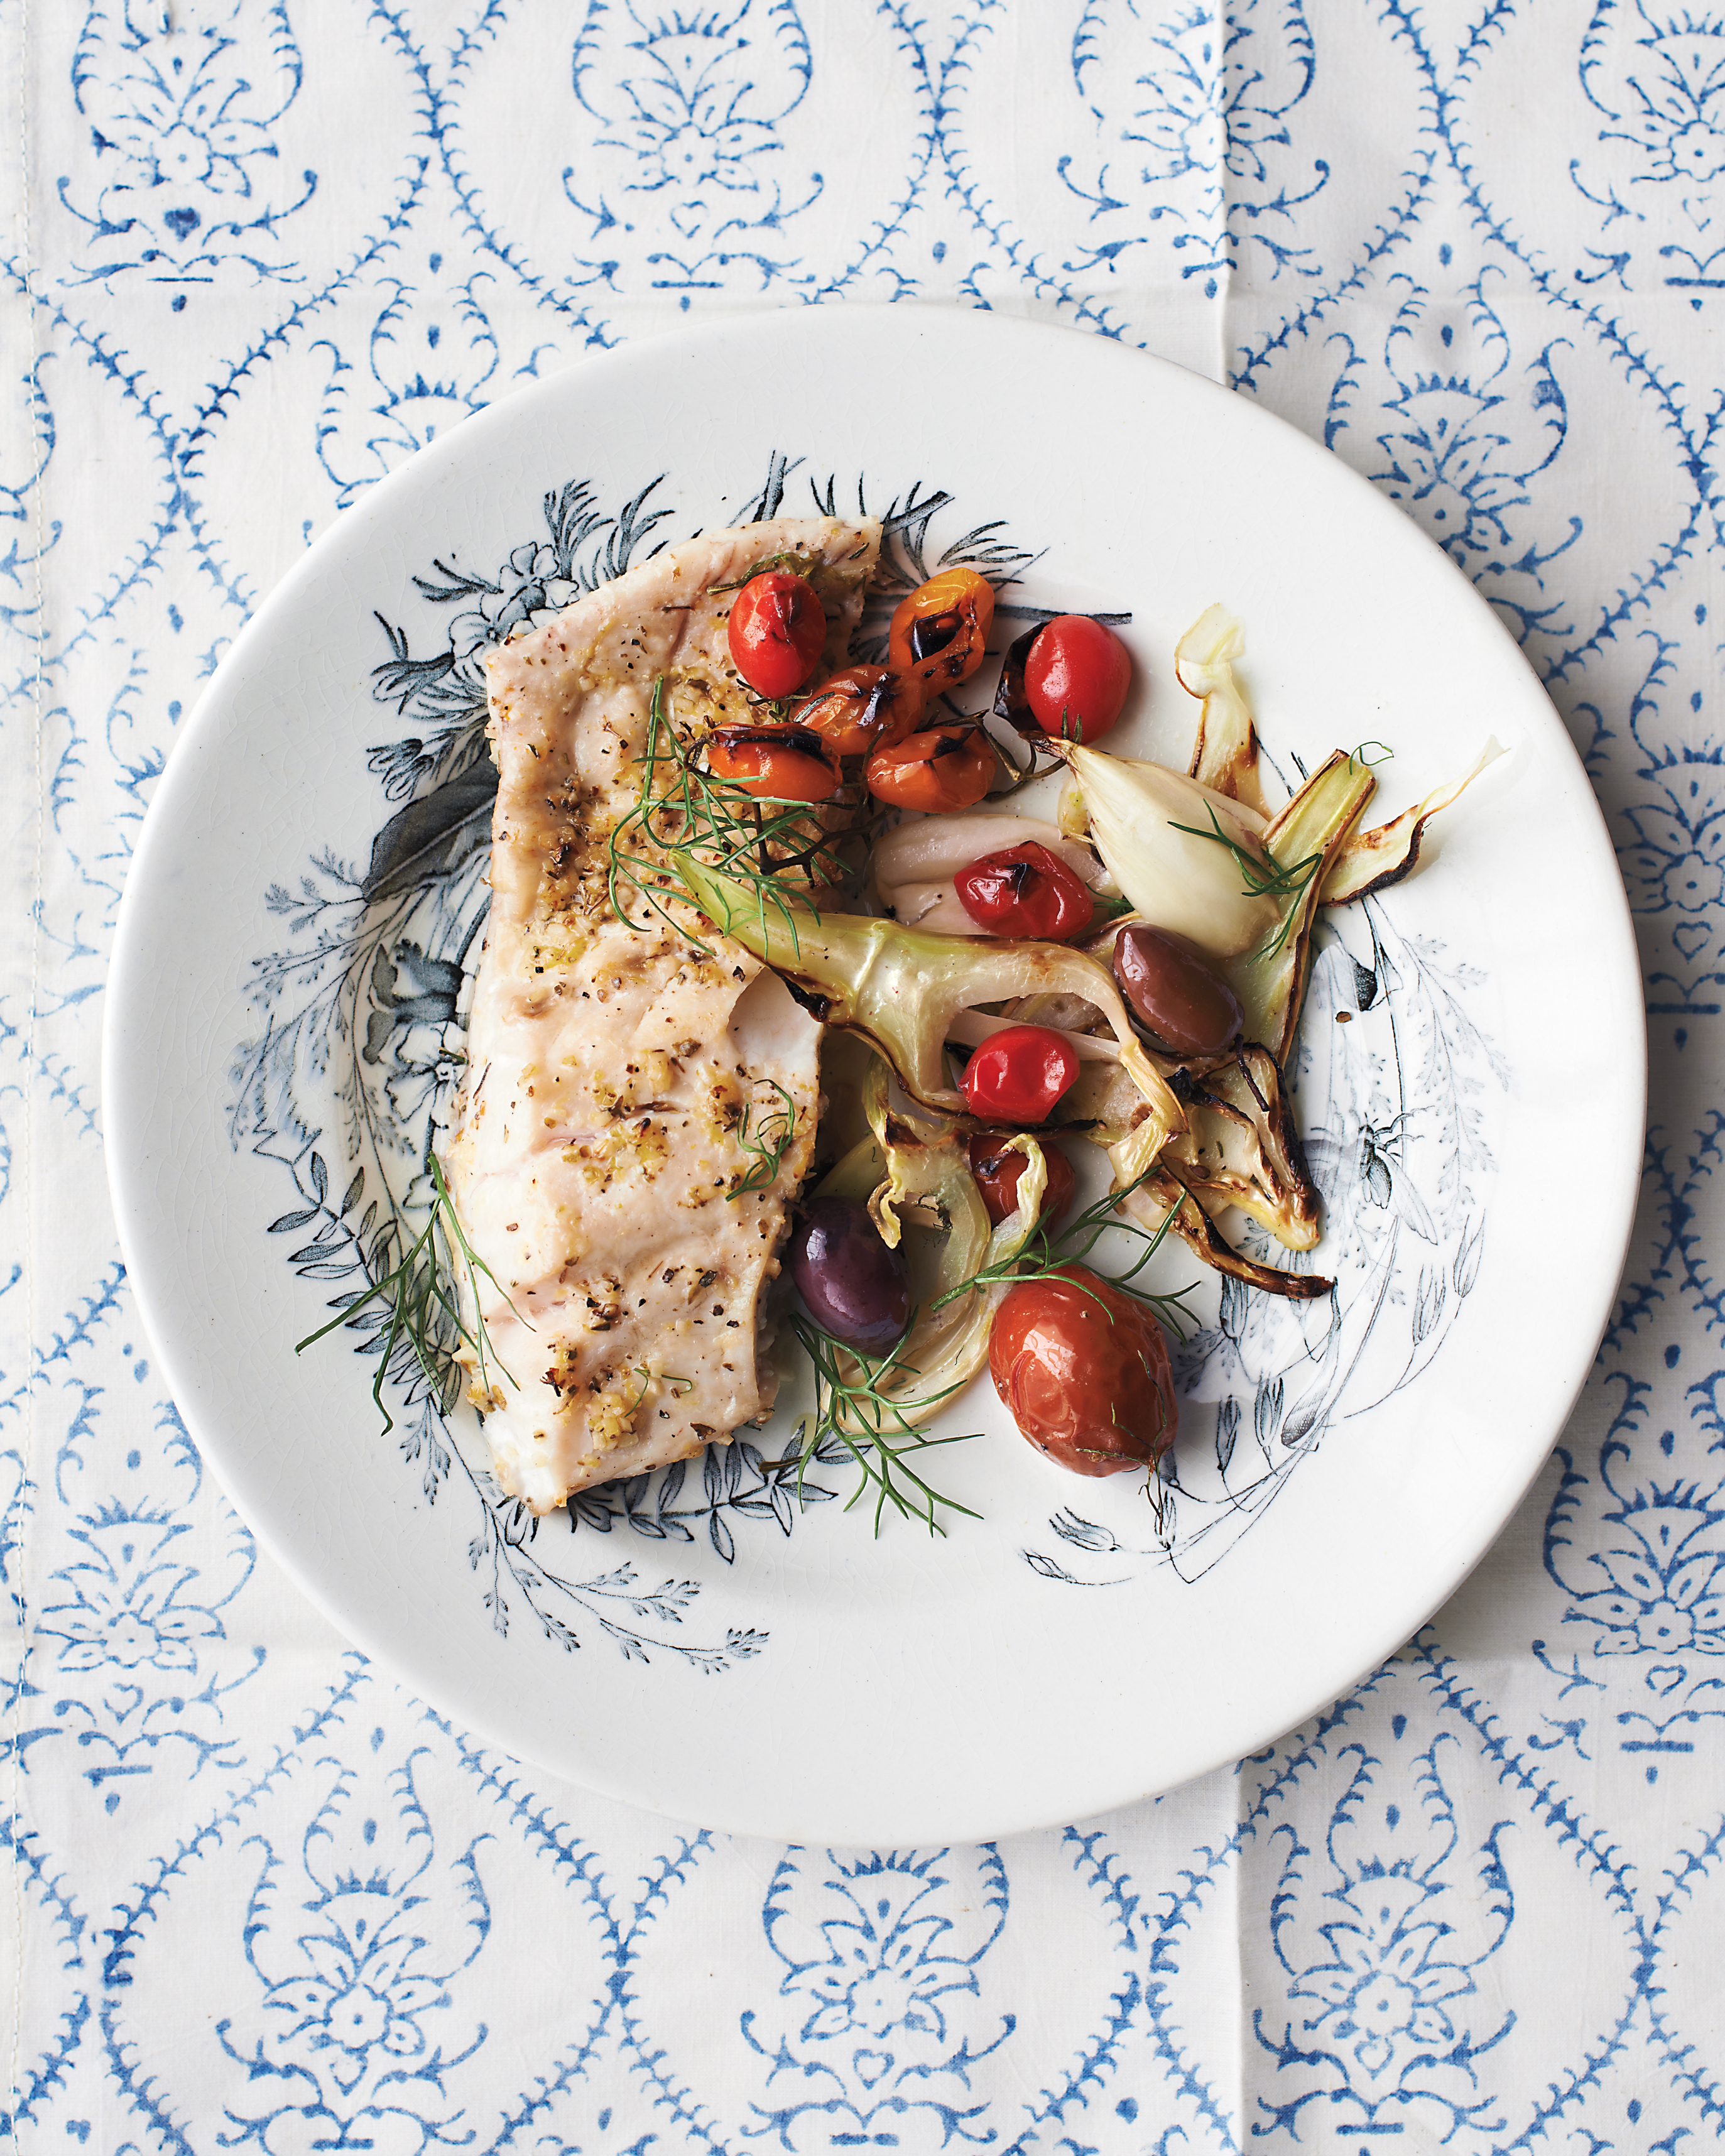 Broiled Striped Bass With Tomatoes and Fennel